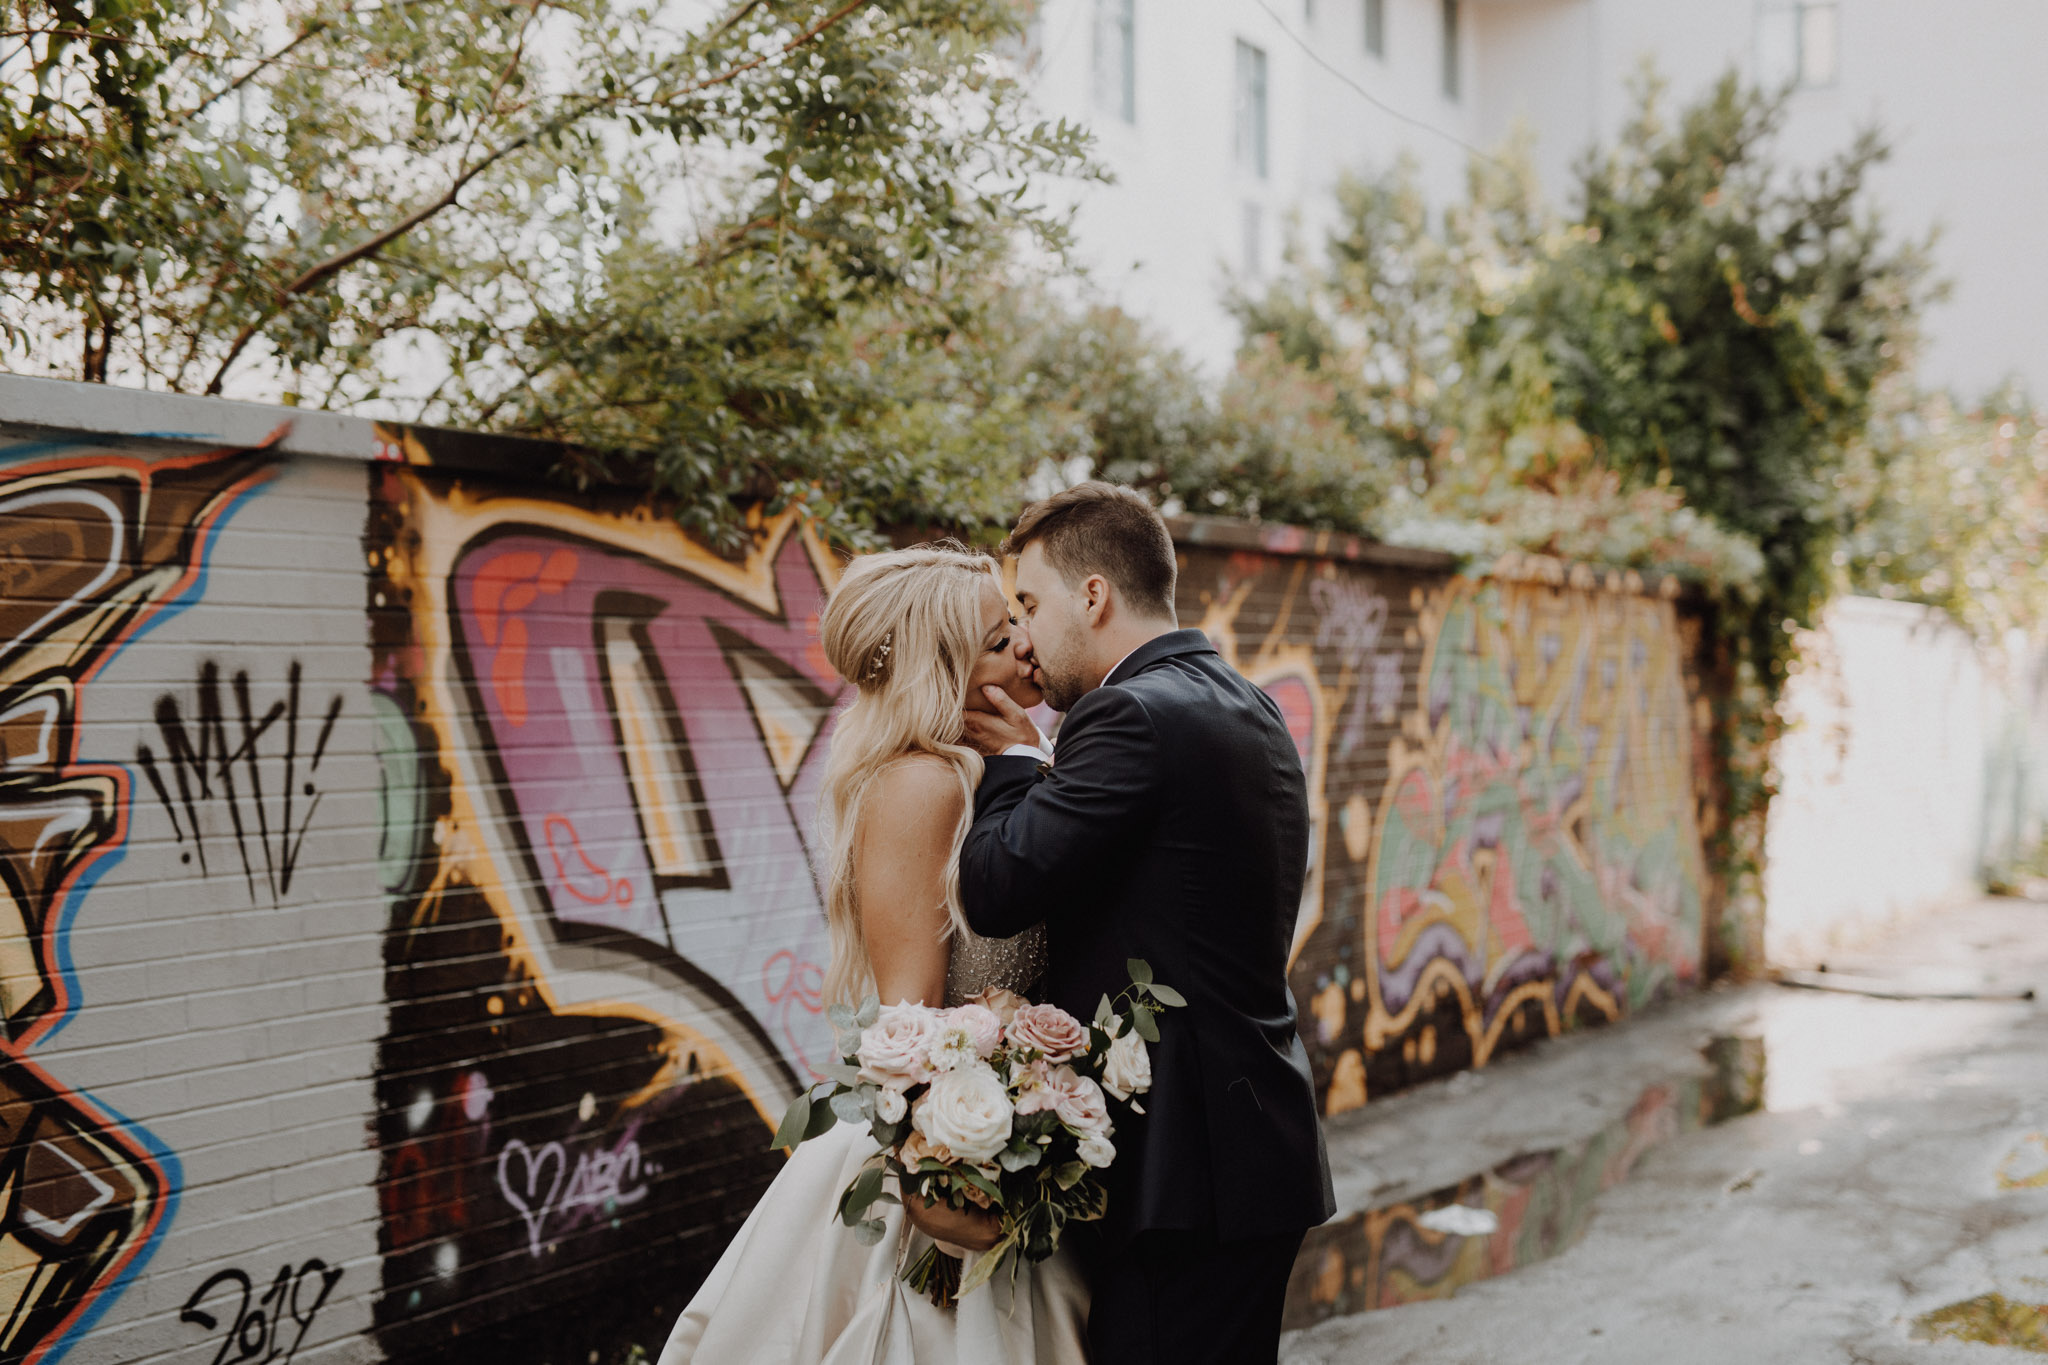 Graffiti Alley kisses at The Burroughes Wedding. Love By Lynzie. Wedding Photographer Jennifer See Studios.